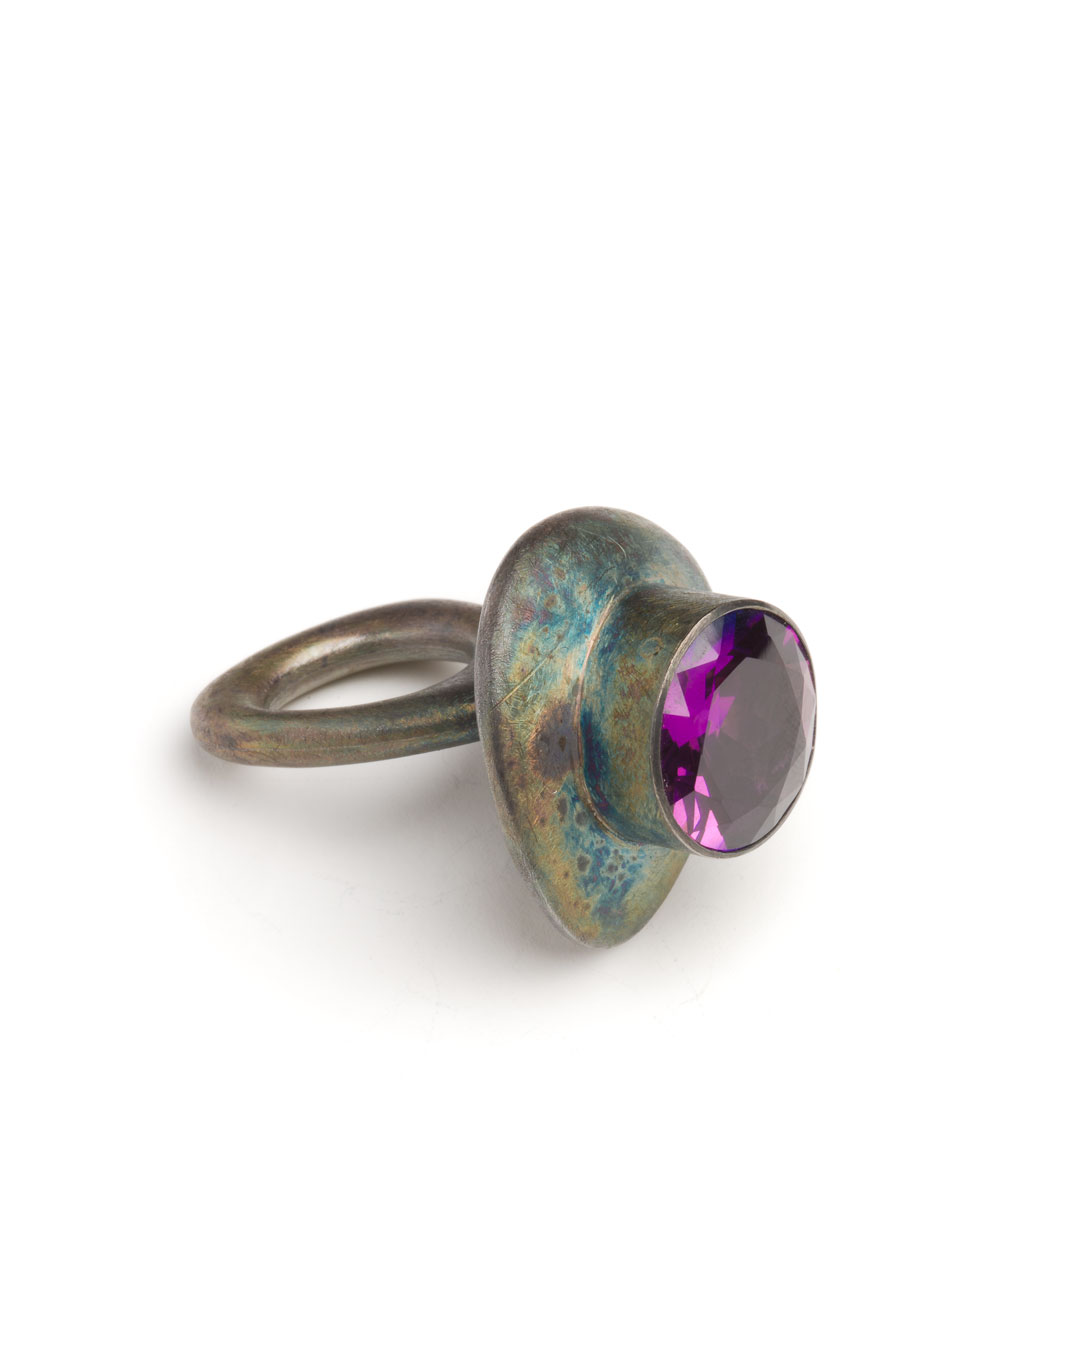 Winfried Krüger, untitled, 1994, ring; oxidised silver, glass, 55 x 40 mm, €1090